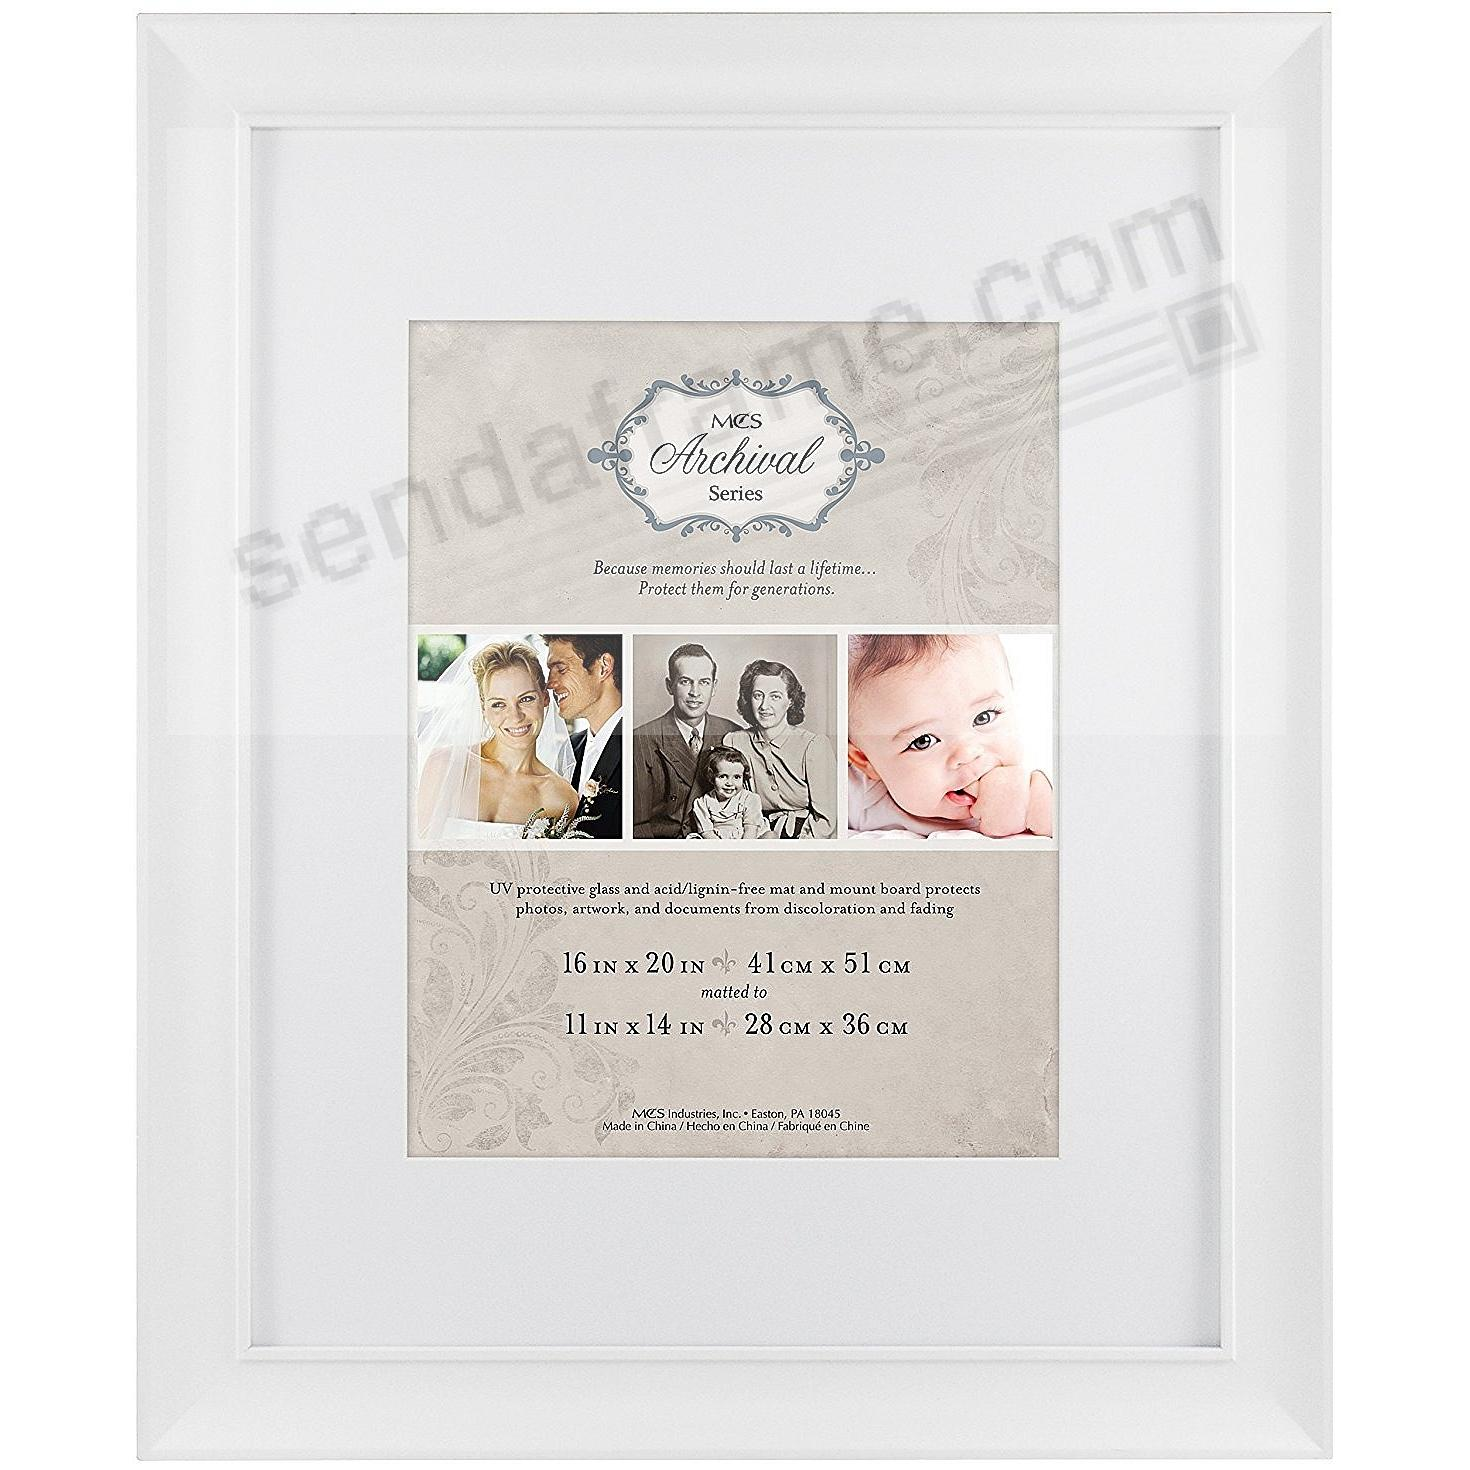 White ARCHIVAL Matted Wood frame 16x20/11x14 by MCS® - Picture ...